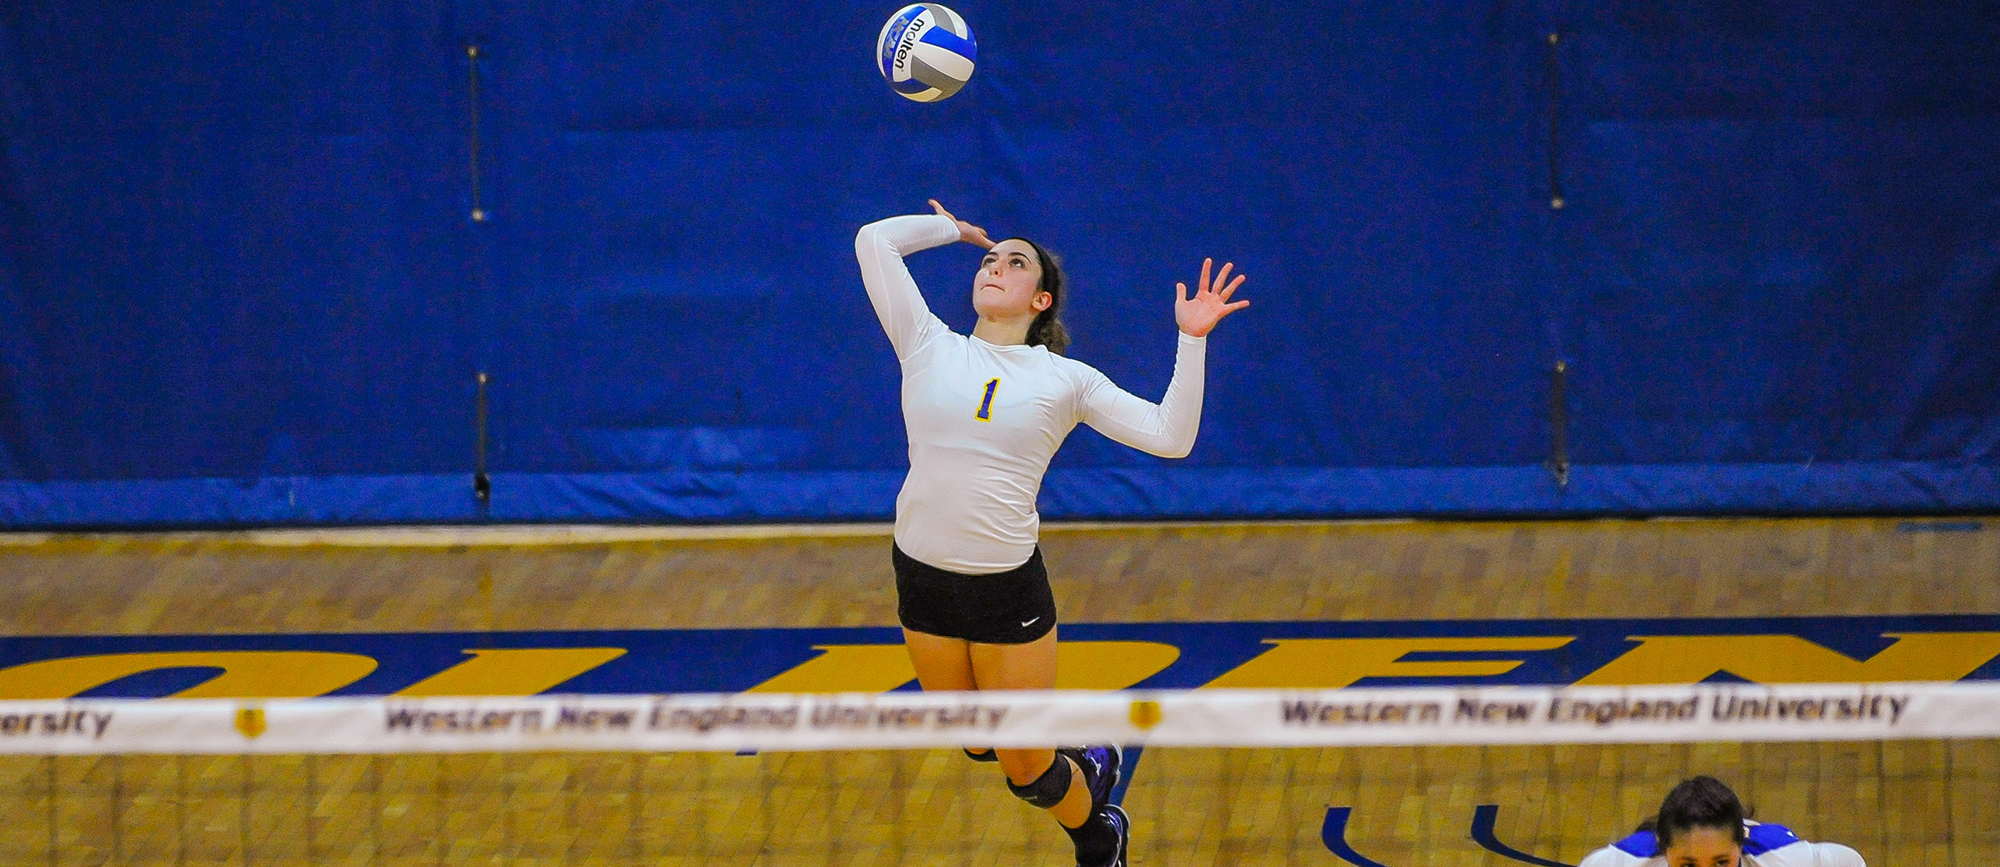 Western New England Rolls to 3-0 Victories over Framingham State & Colby Sawyer